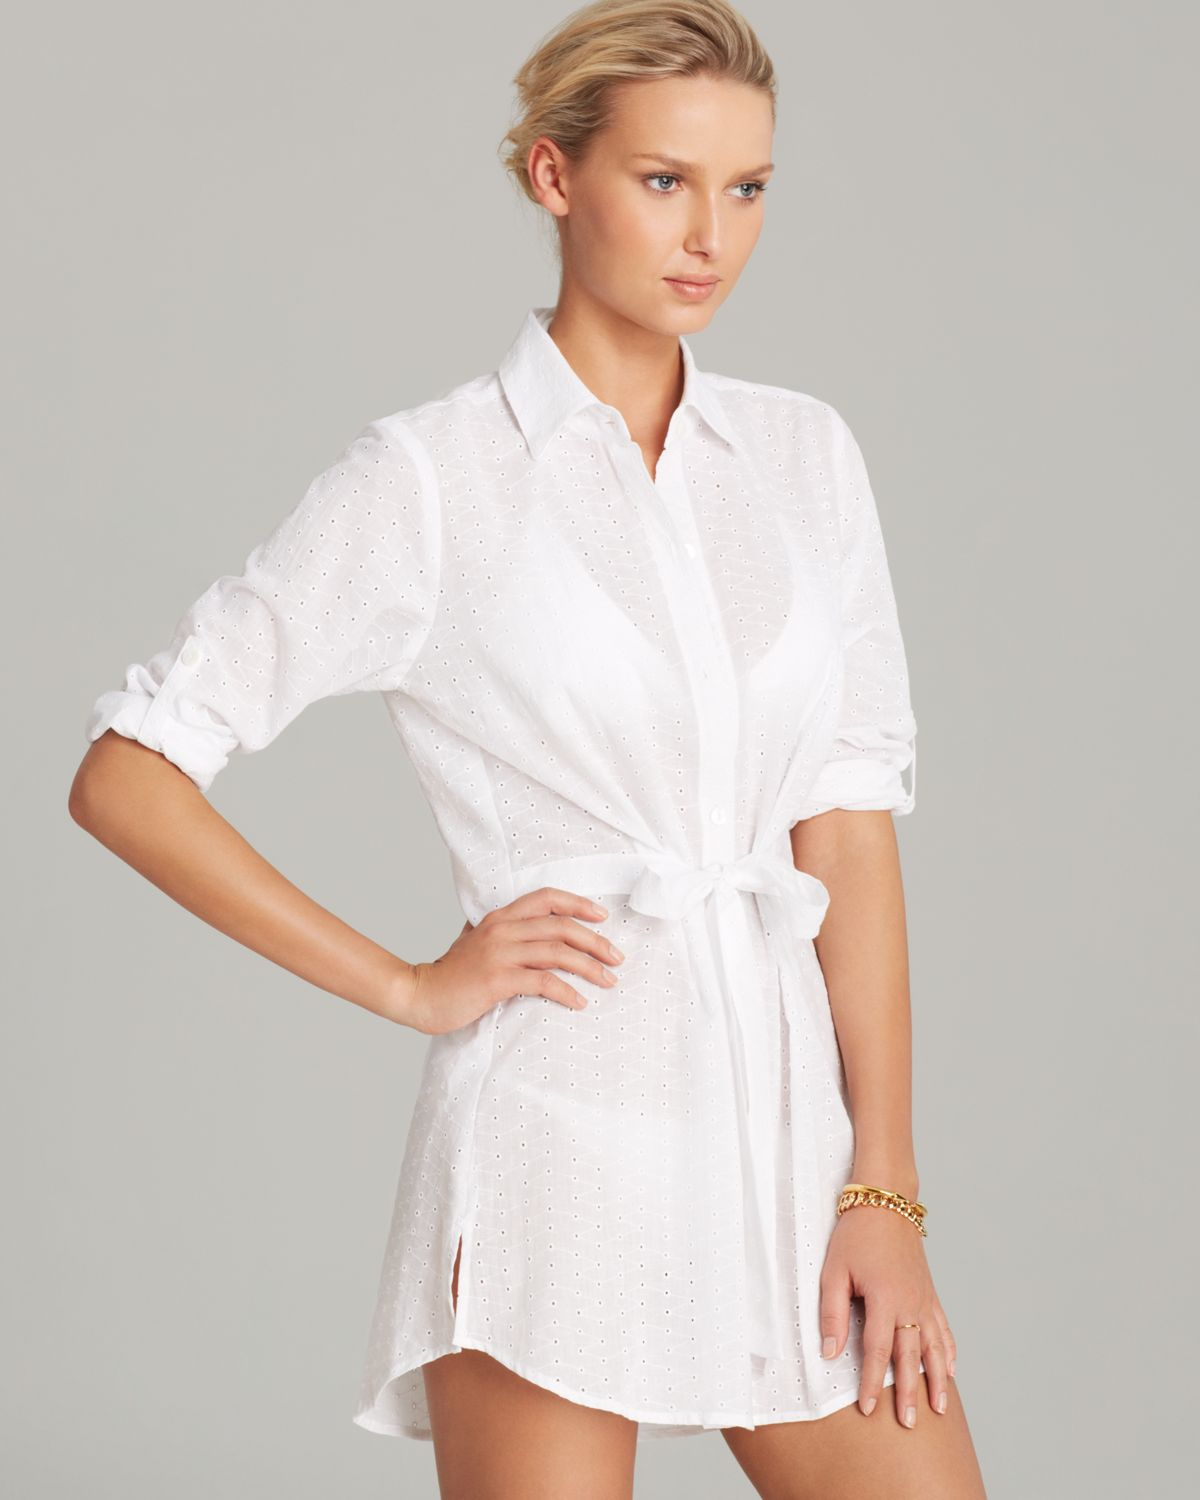 7e52c0ca1926e Lyst - Tommy Bahama Eyelet Covers Boyfriend Tie Shirt Swim Cover Up ...